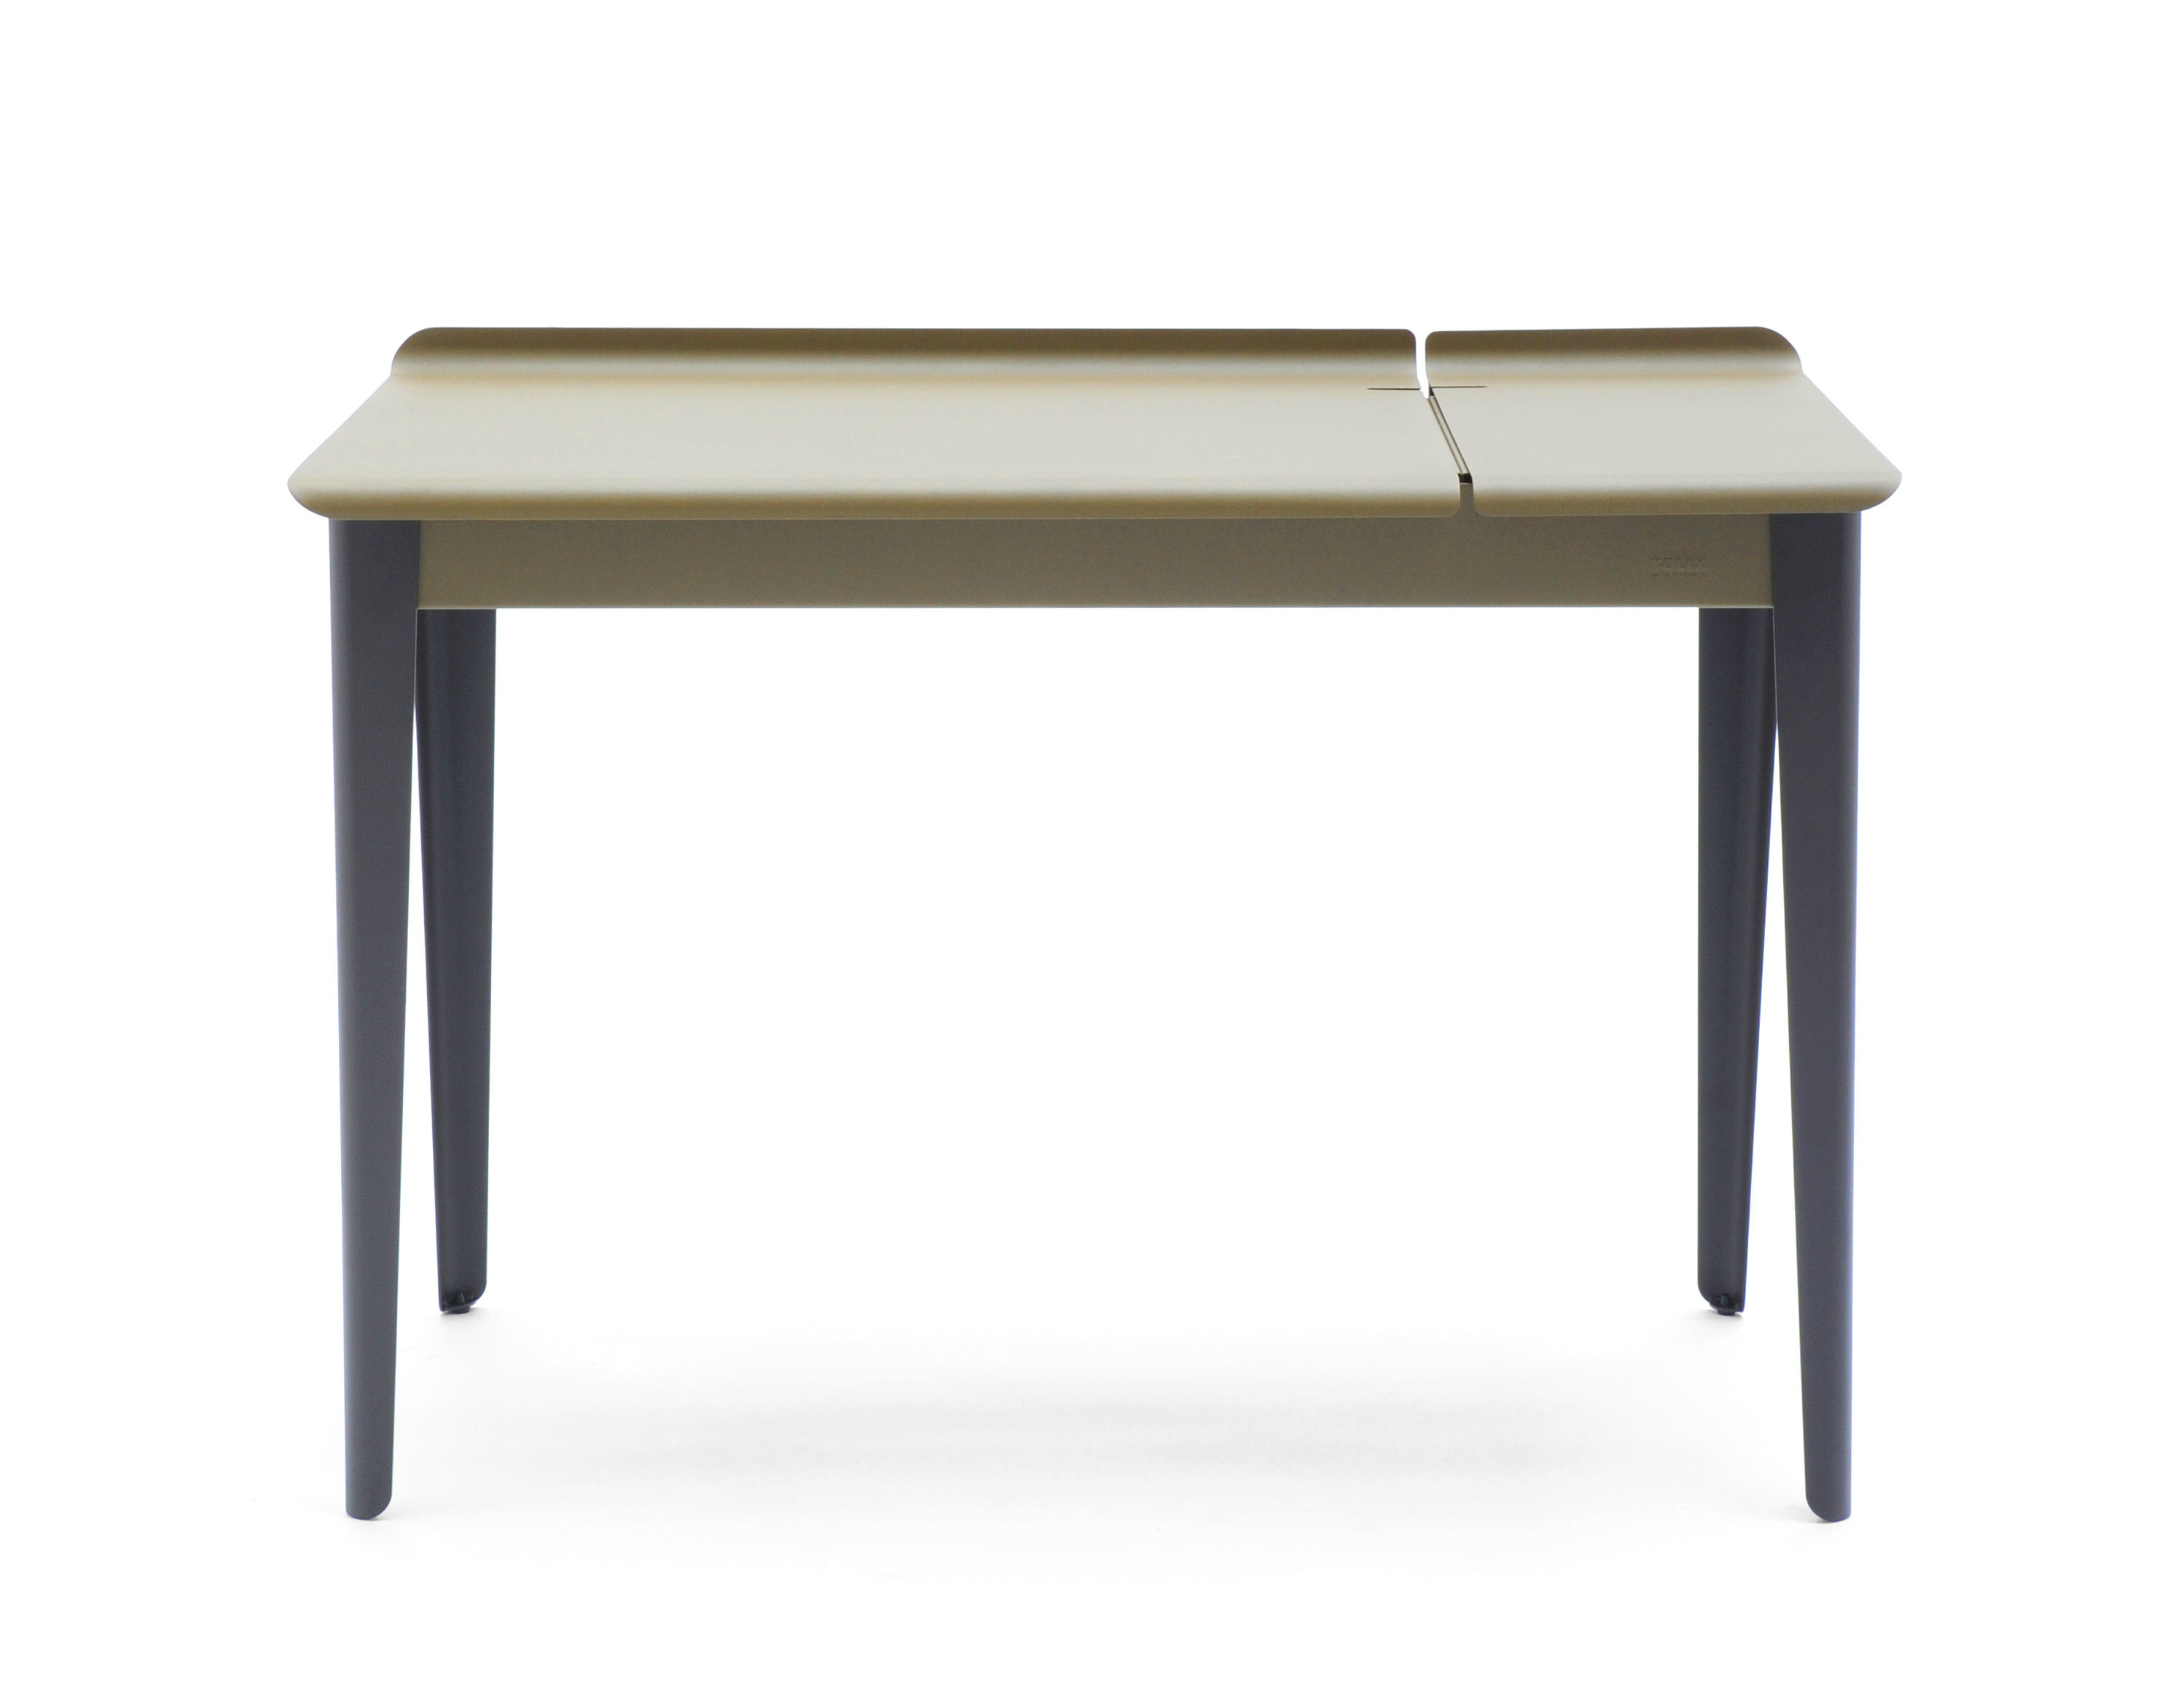 Bureau Tolix Clapet Flap Desk By Sebastian Bergne For Tolix